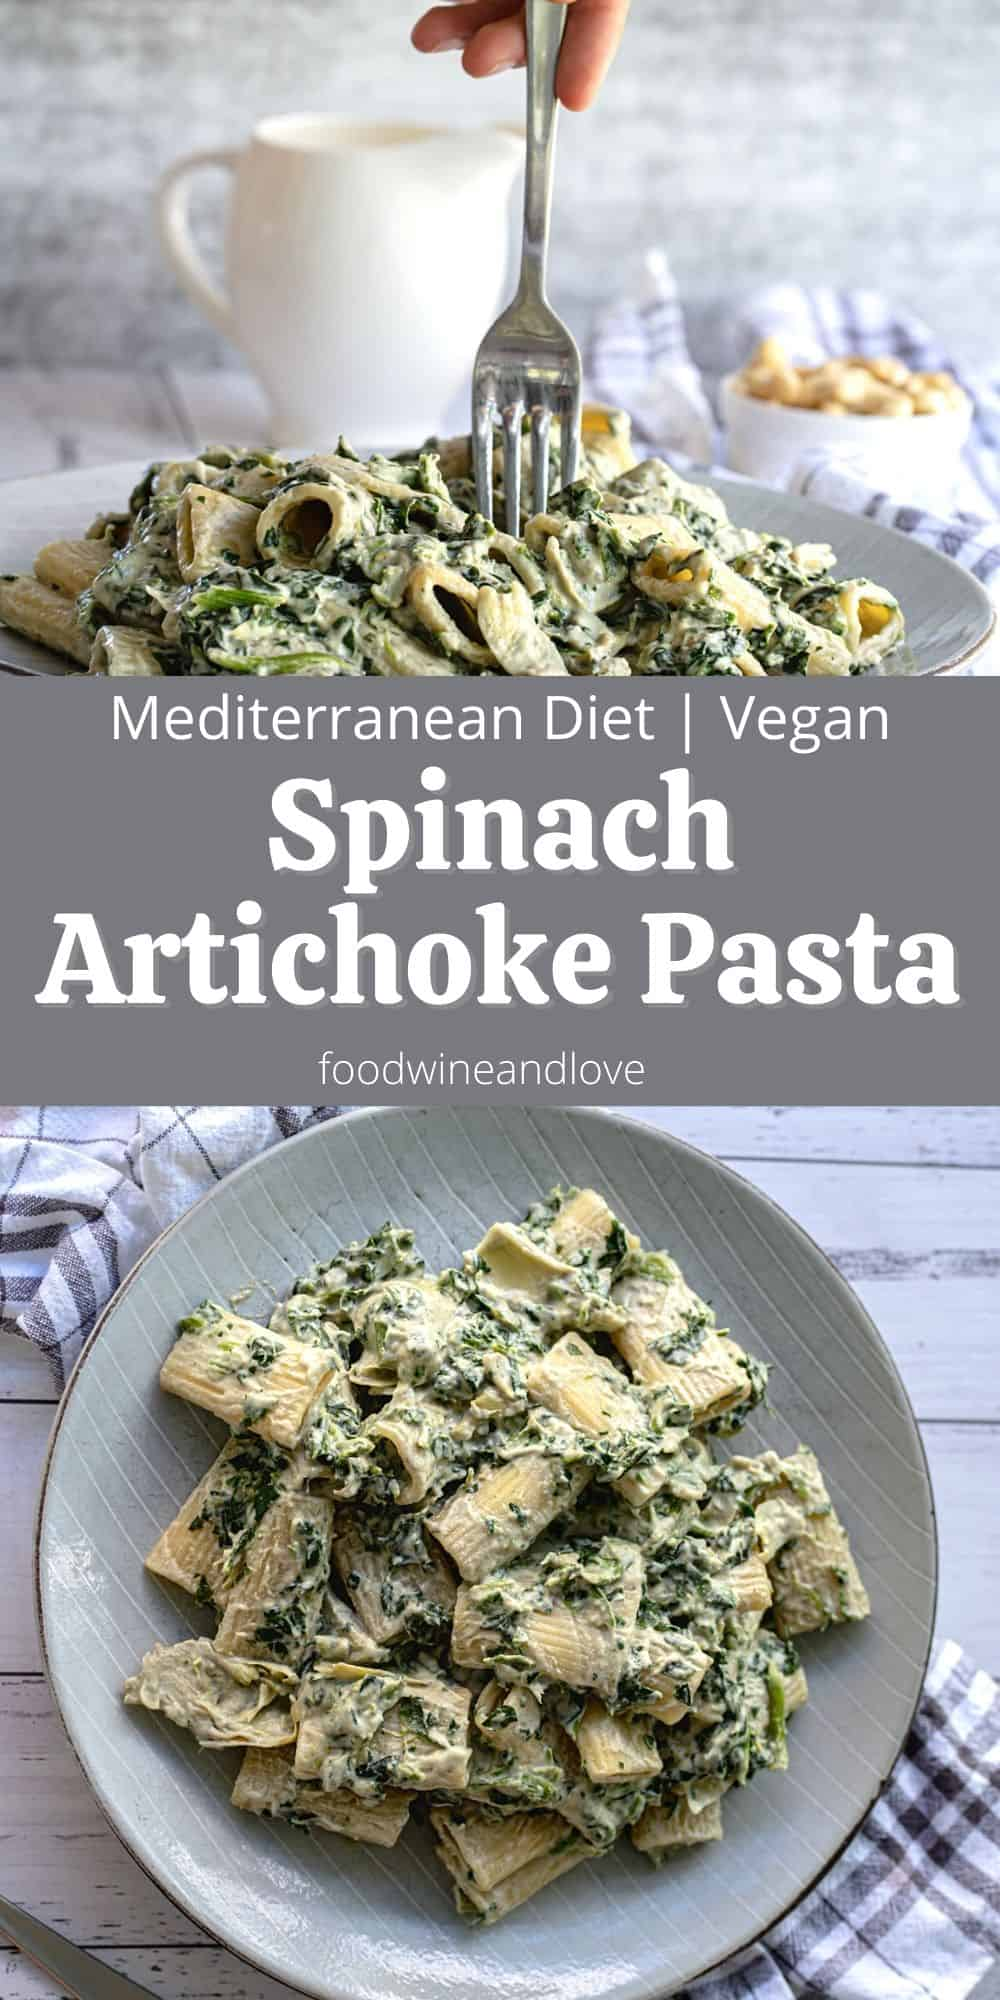 Creamy Vegan Pasta with Spinach and Artichokes, foodwineandlove.com